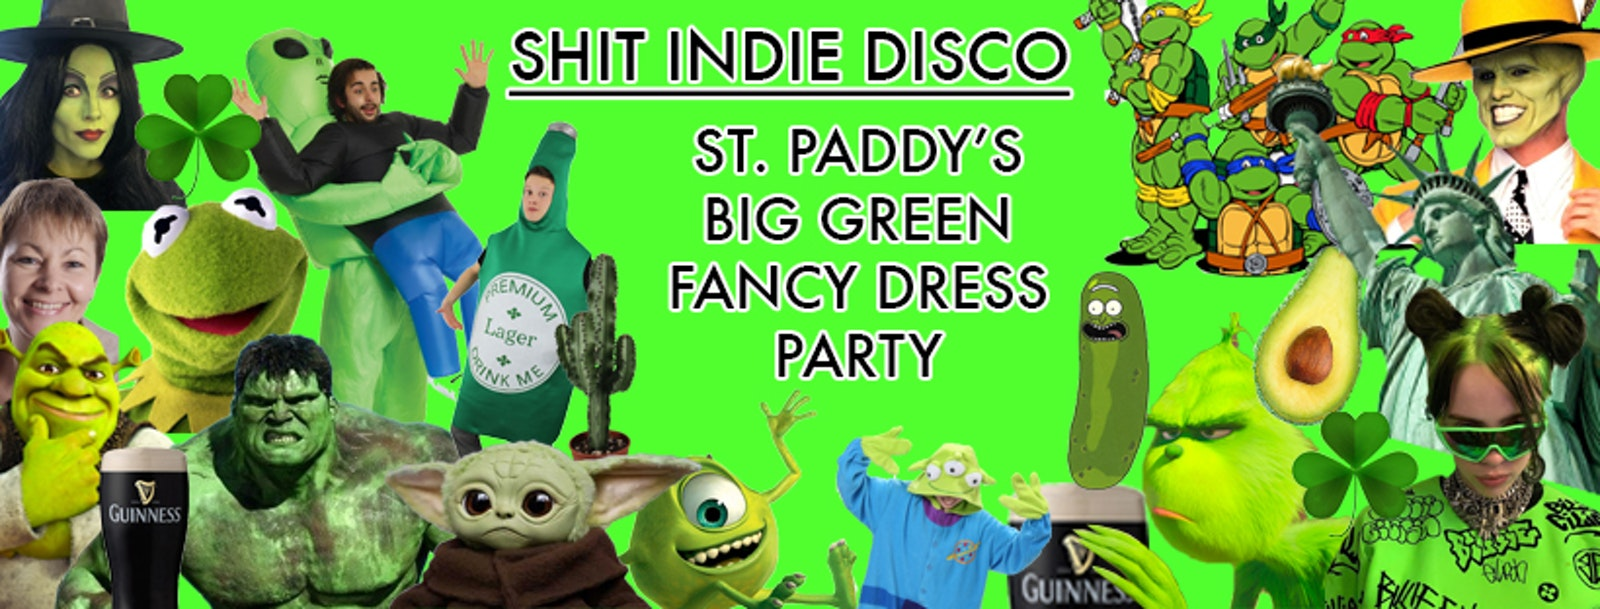 Shit Indie Disco & Med's St. Paddy's Big Green Fancy Dress Party